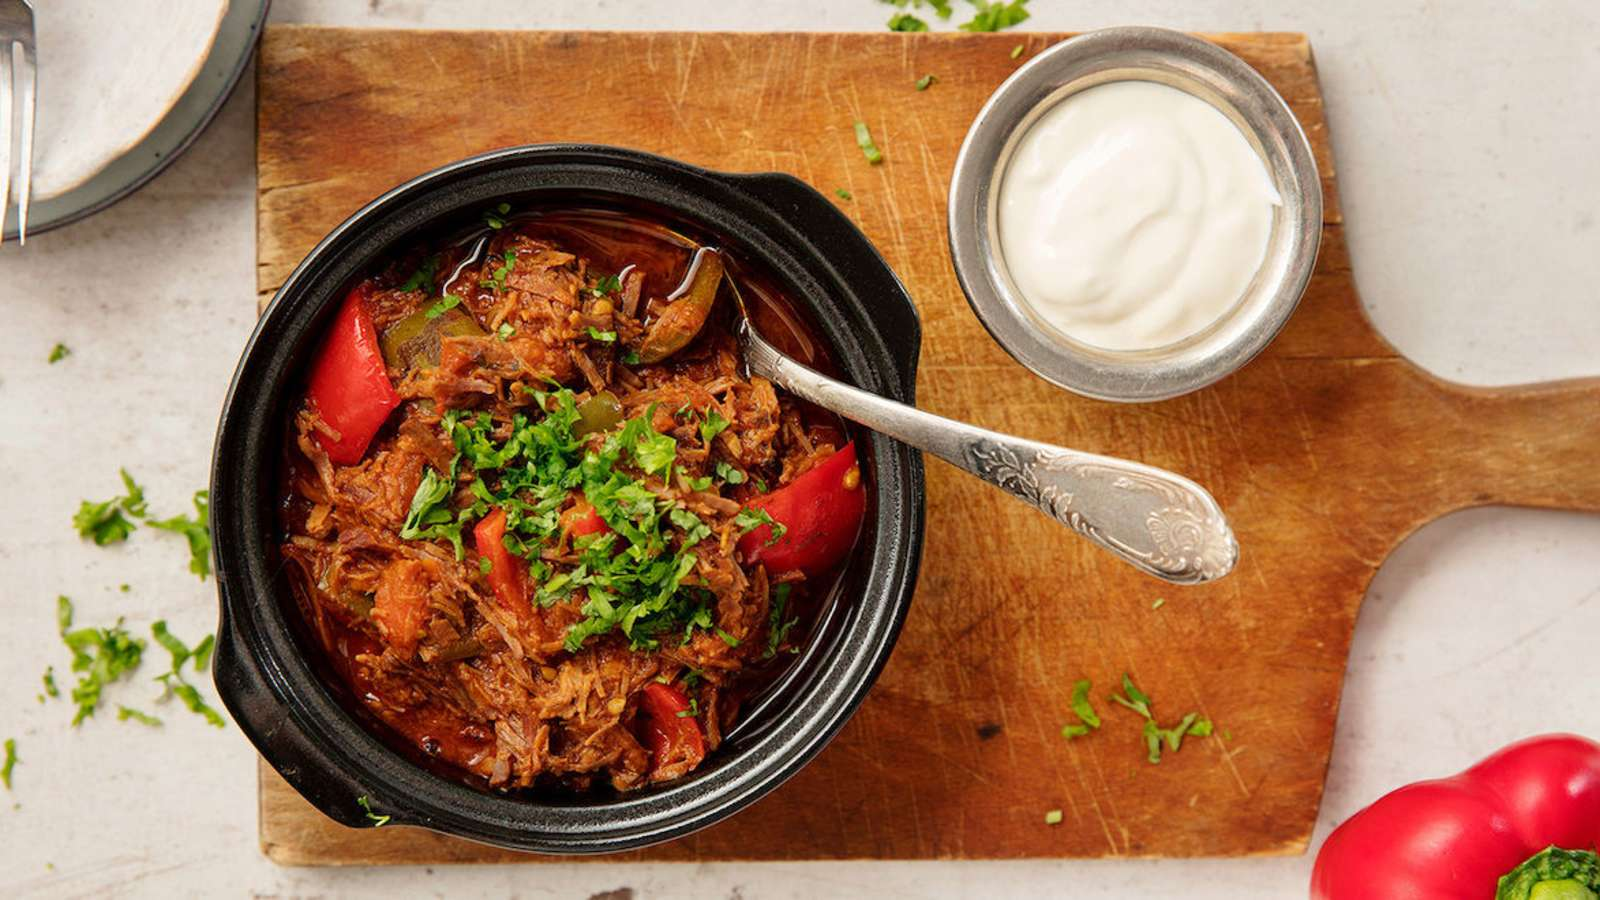 Pulled beef gulassi